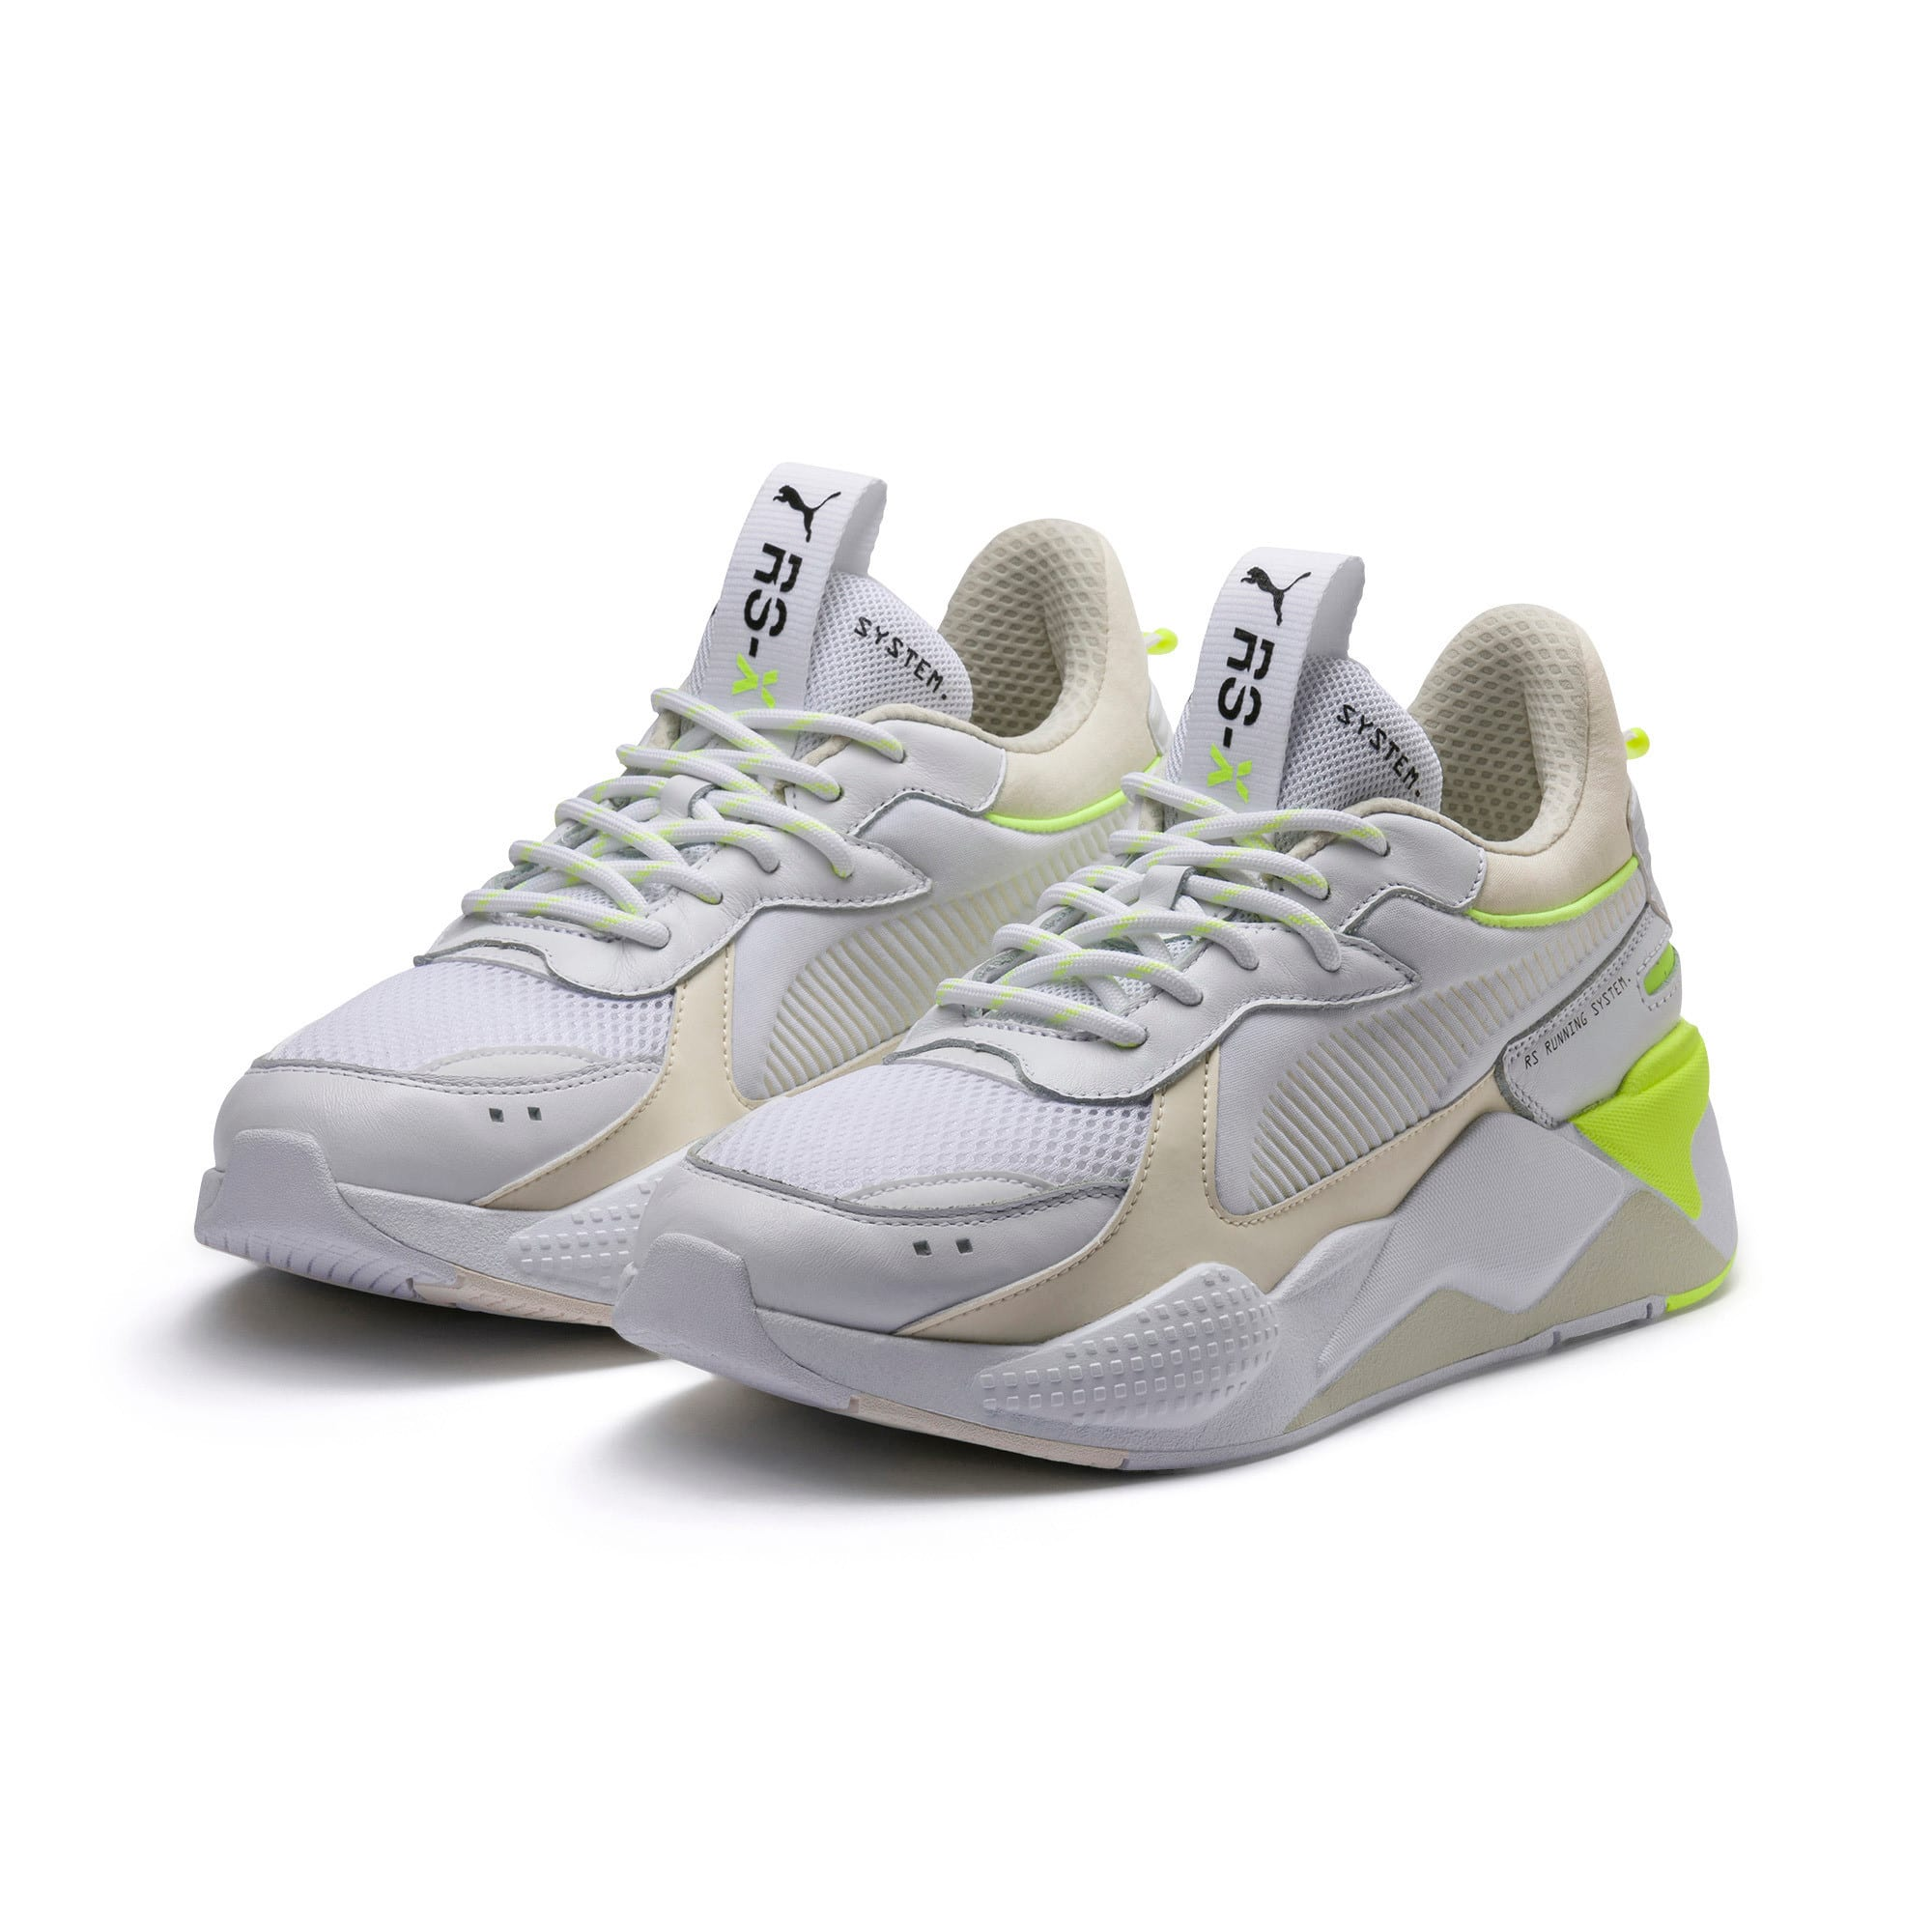 Thumbnail 2 of RS-X Tracks Trainers, Puma White-Whisper White, medium